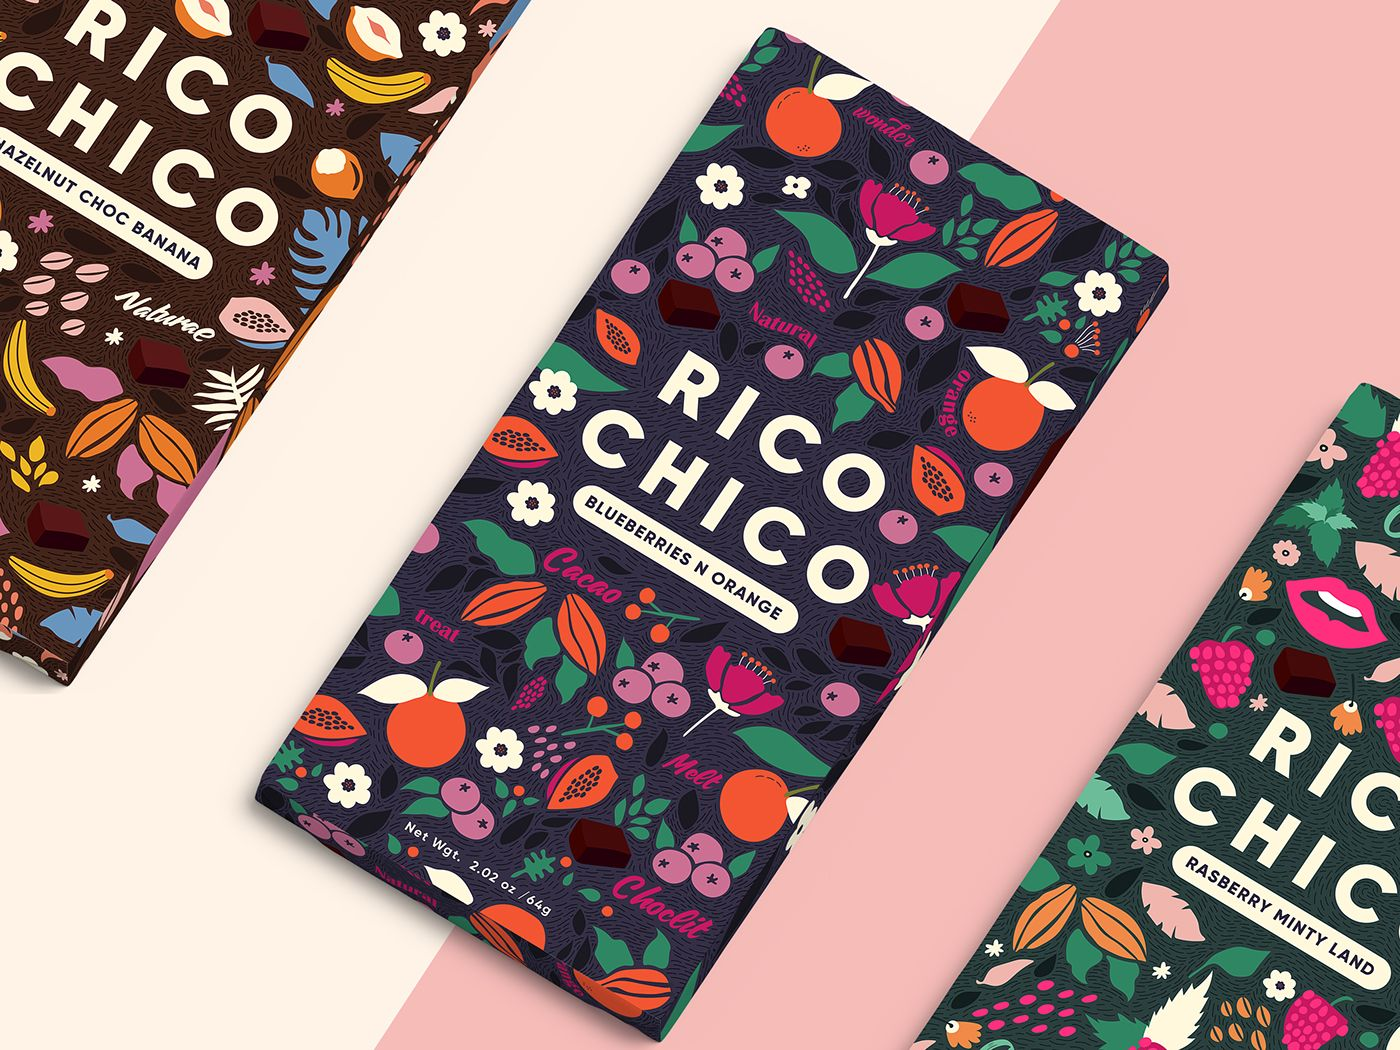 Rico Chico  A Chocolit Land is part of Packaging design - Packaging of the World is a package design inspiration archive showcasing the best, most interesting and creative work worldwide